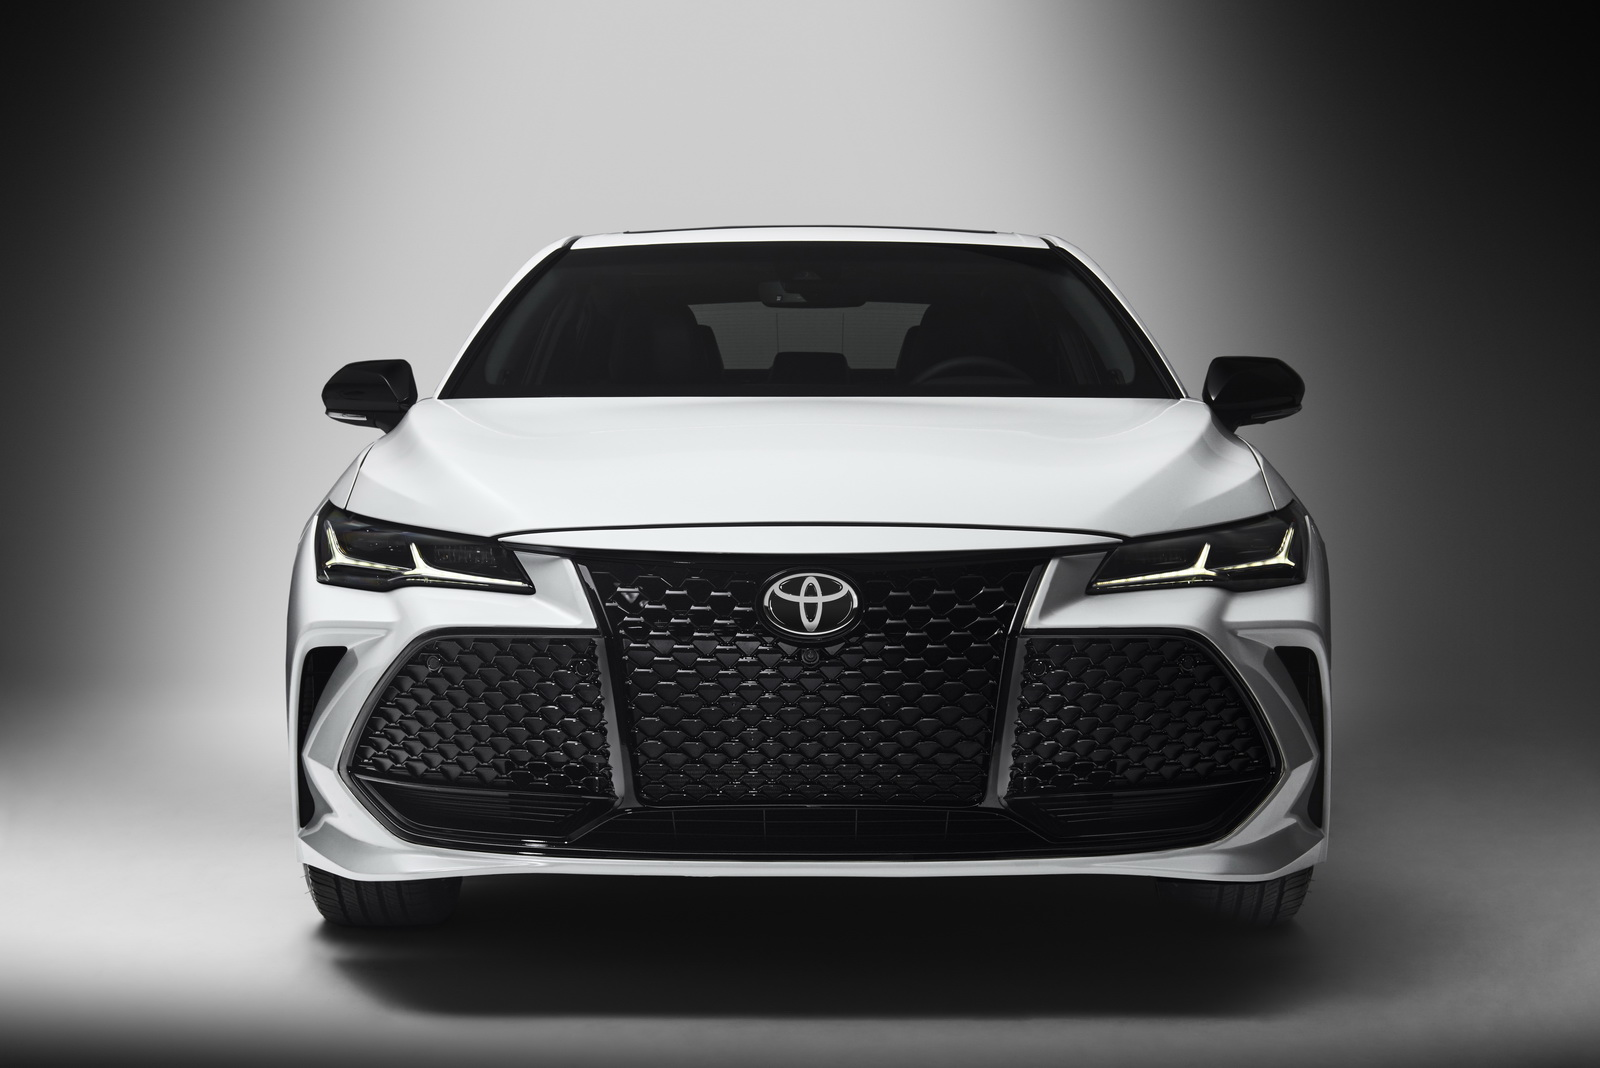 The new Avalon 2019 is being unveiled in Detroit The new Avalon 2019 is being unveiled in Detroit  D8 A7 D9 84 D8 B3 D9 8A D8 A7 D8 B1 D8 A9  D8 A7 D9 84 D8 AC D8 AF D9 8A D8 AF D8 A9  D8 AA D9 88 D9 8A D9 88 D8 AA D8 A7  D8 A7 D9 81 D8 A7 D9 84 D9 88 D9 86 2019